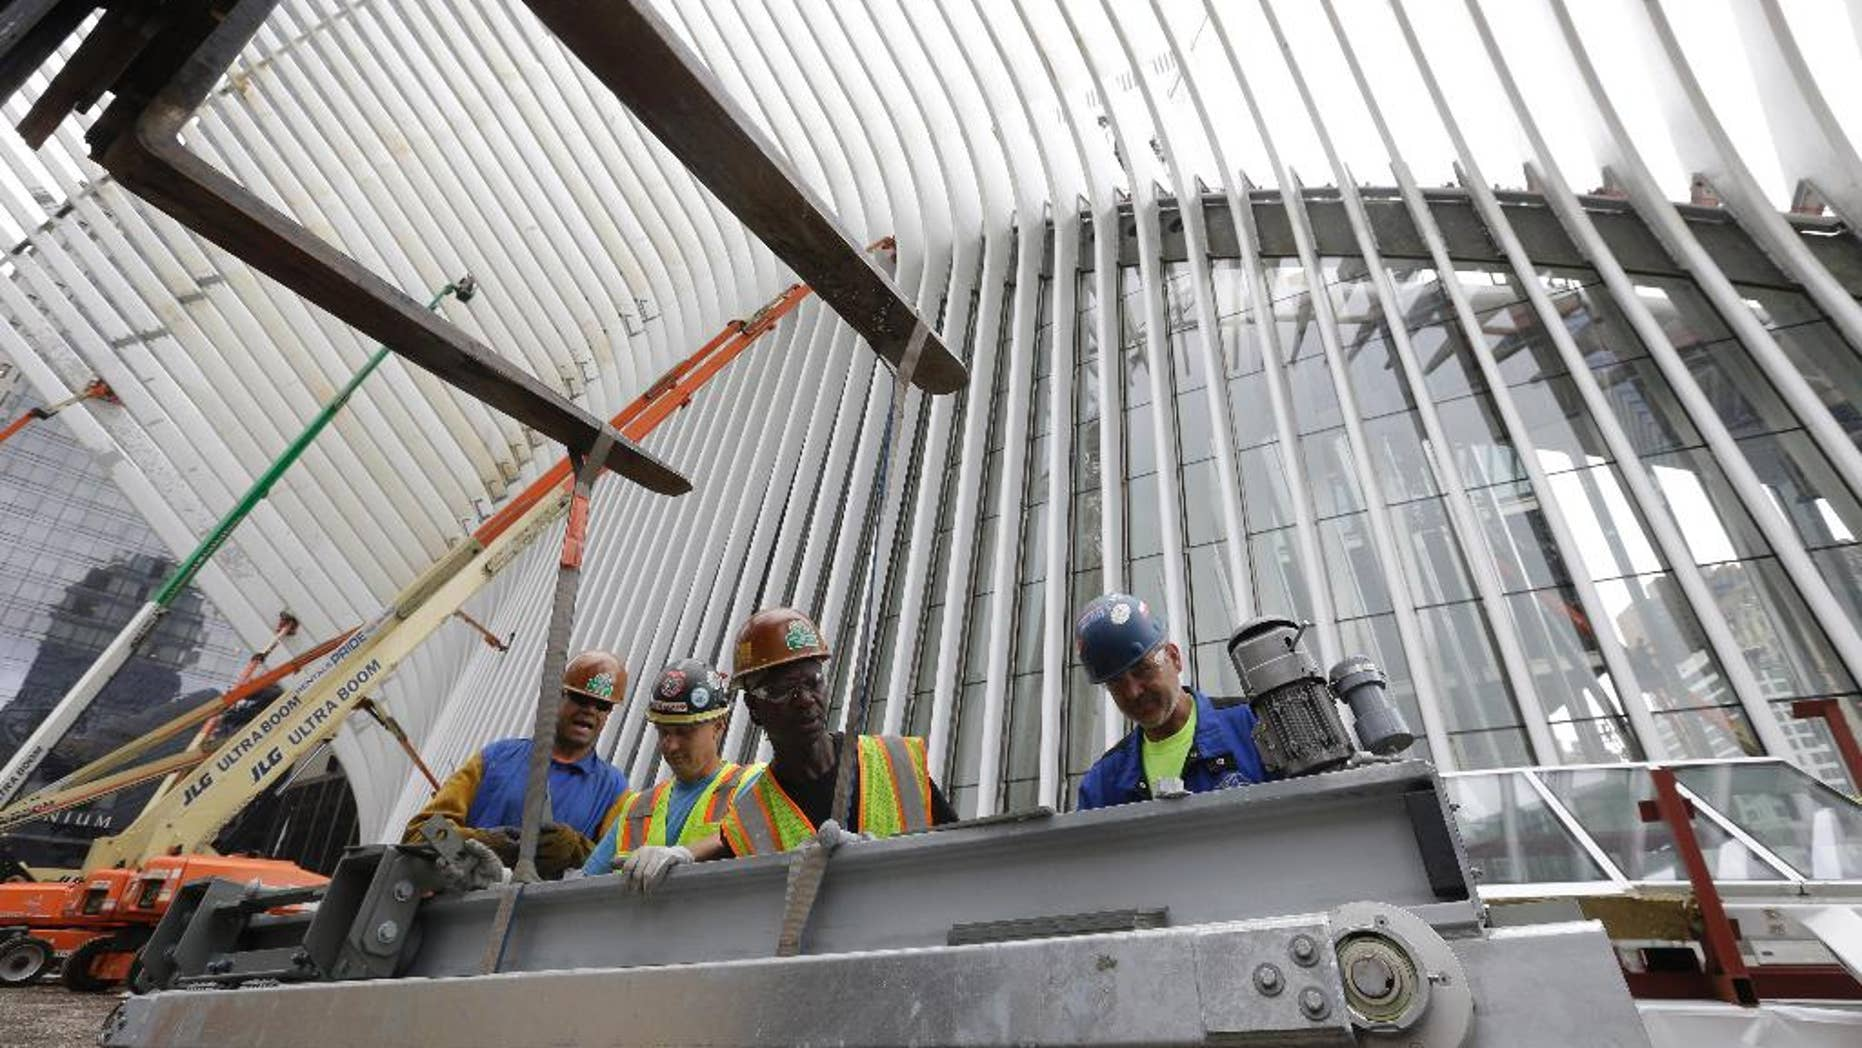 FILE - In this June 18, 2015, file photo, construction workers secure a steel apparatus to a crane that will be used on the roof of the Oculus structure at the World Trade Center transportation hub, in New York. The Commerce Department reports on U.S. construction spending in May on Wednesday, July 1, 2015. (AP Photo/Mary Altaffer, File)